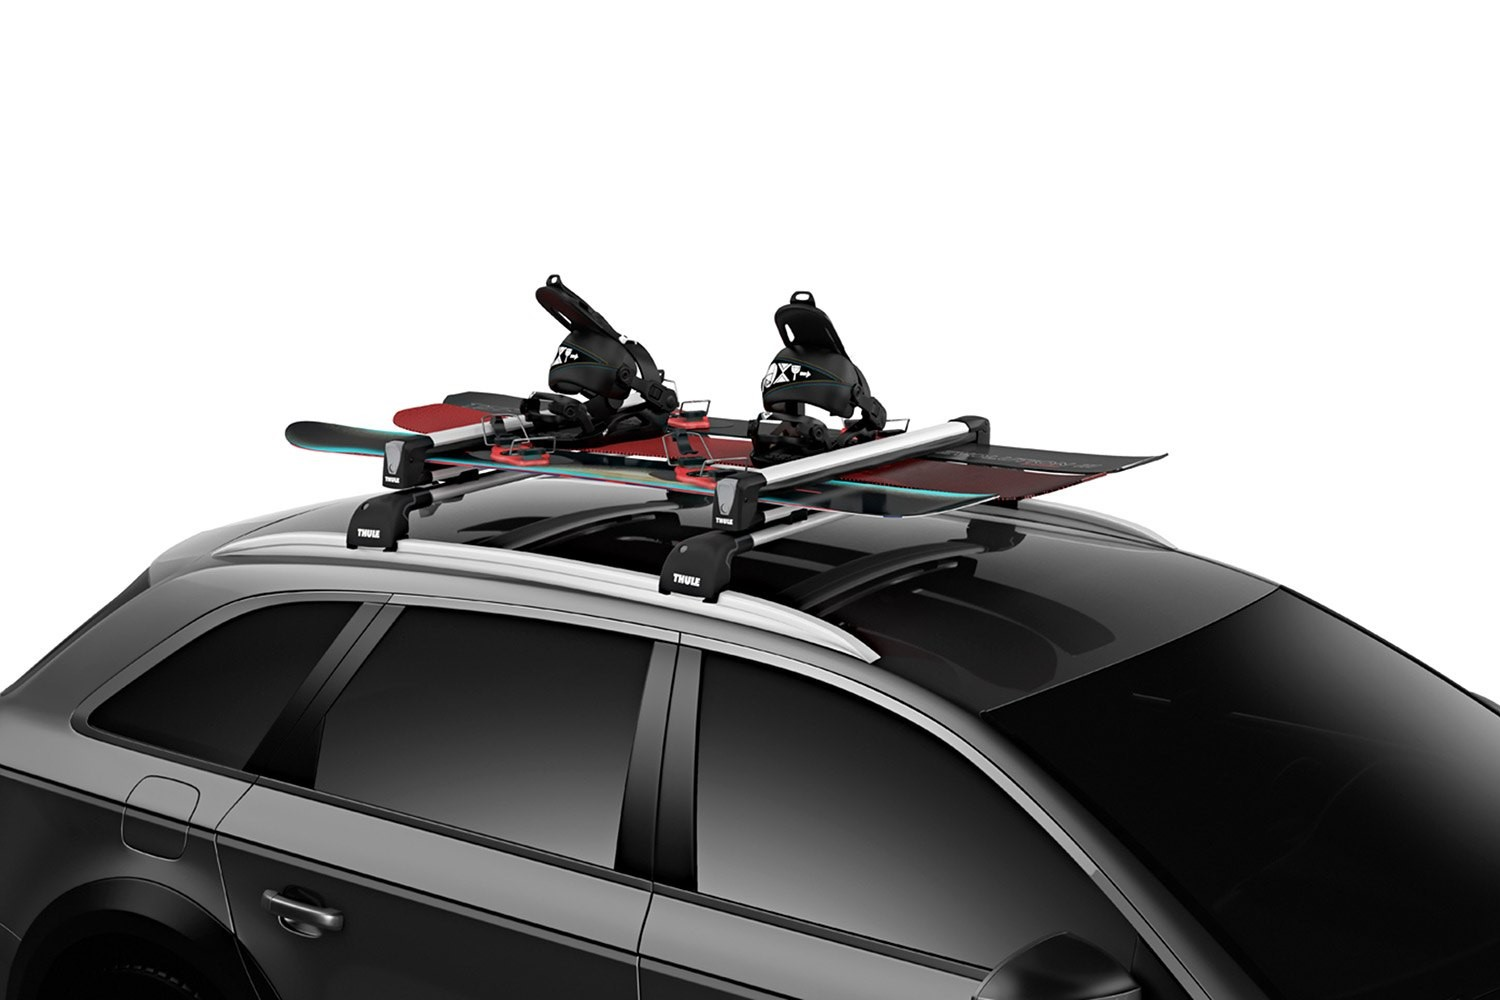 Snow Board/Ski Carriers